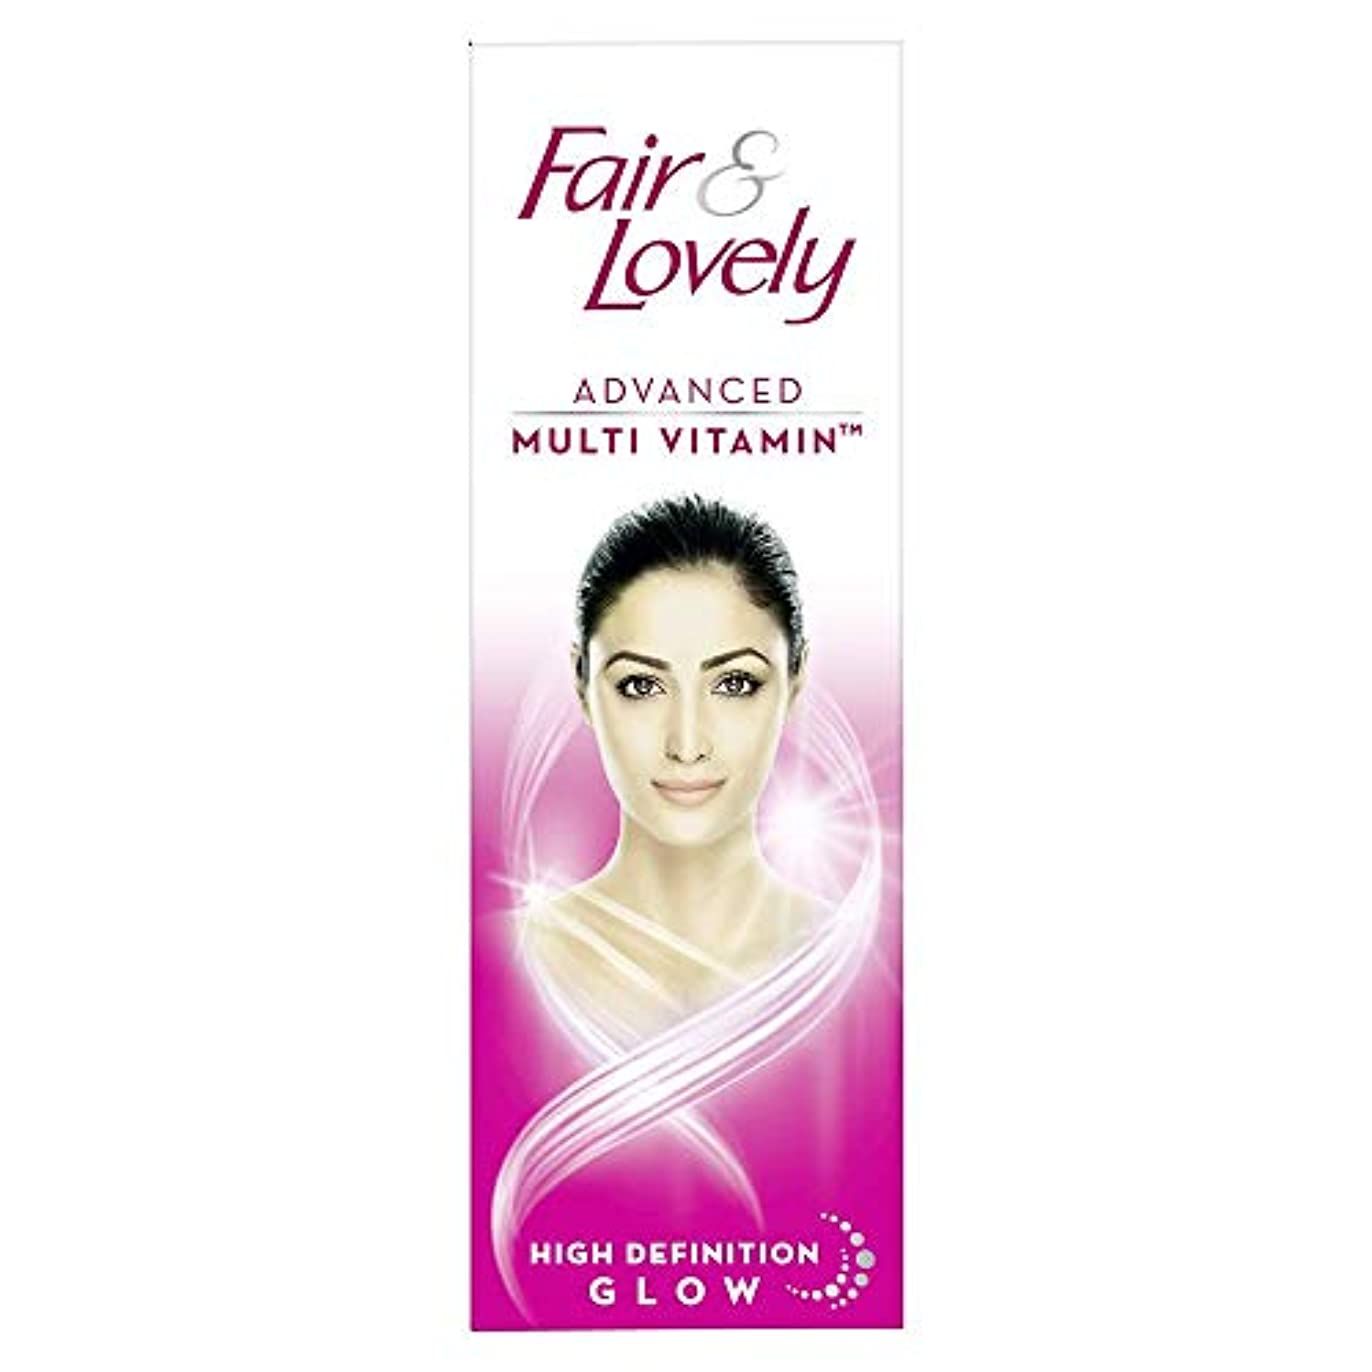 Fair and Lovely Advanced Multi Vitamin Face Cream, 50g